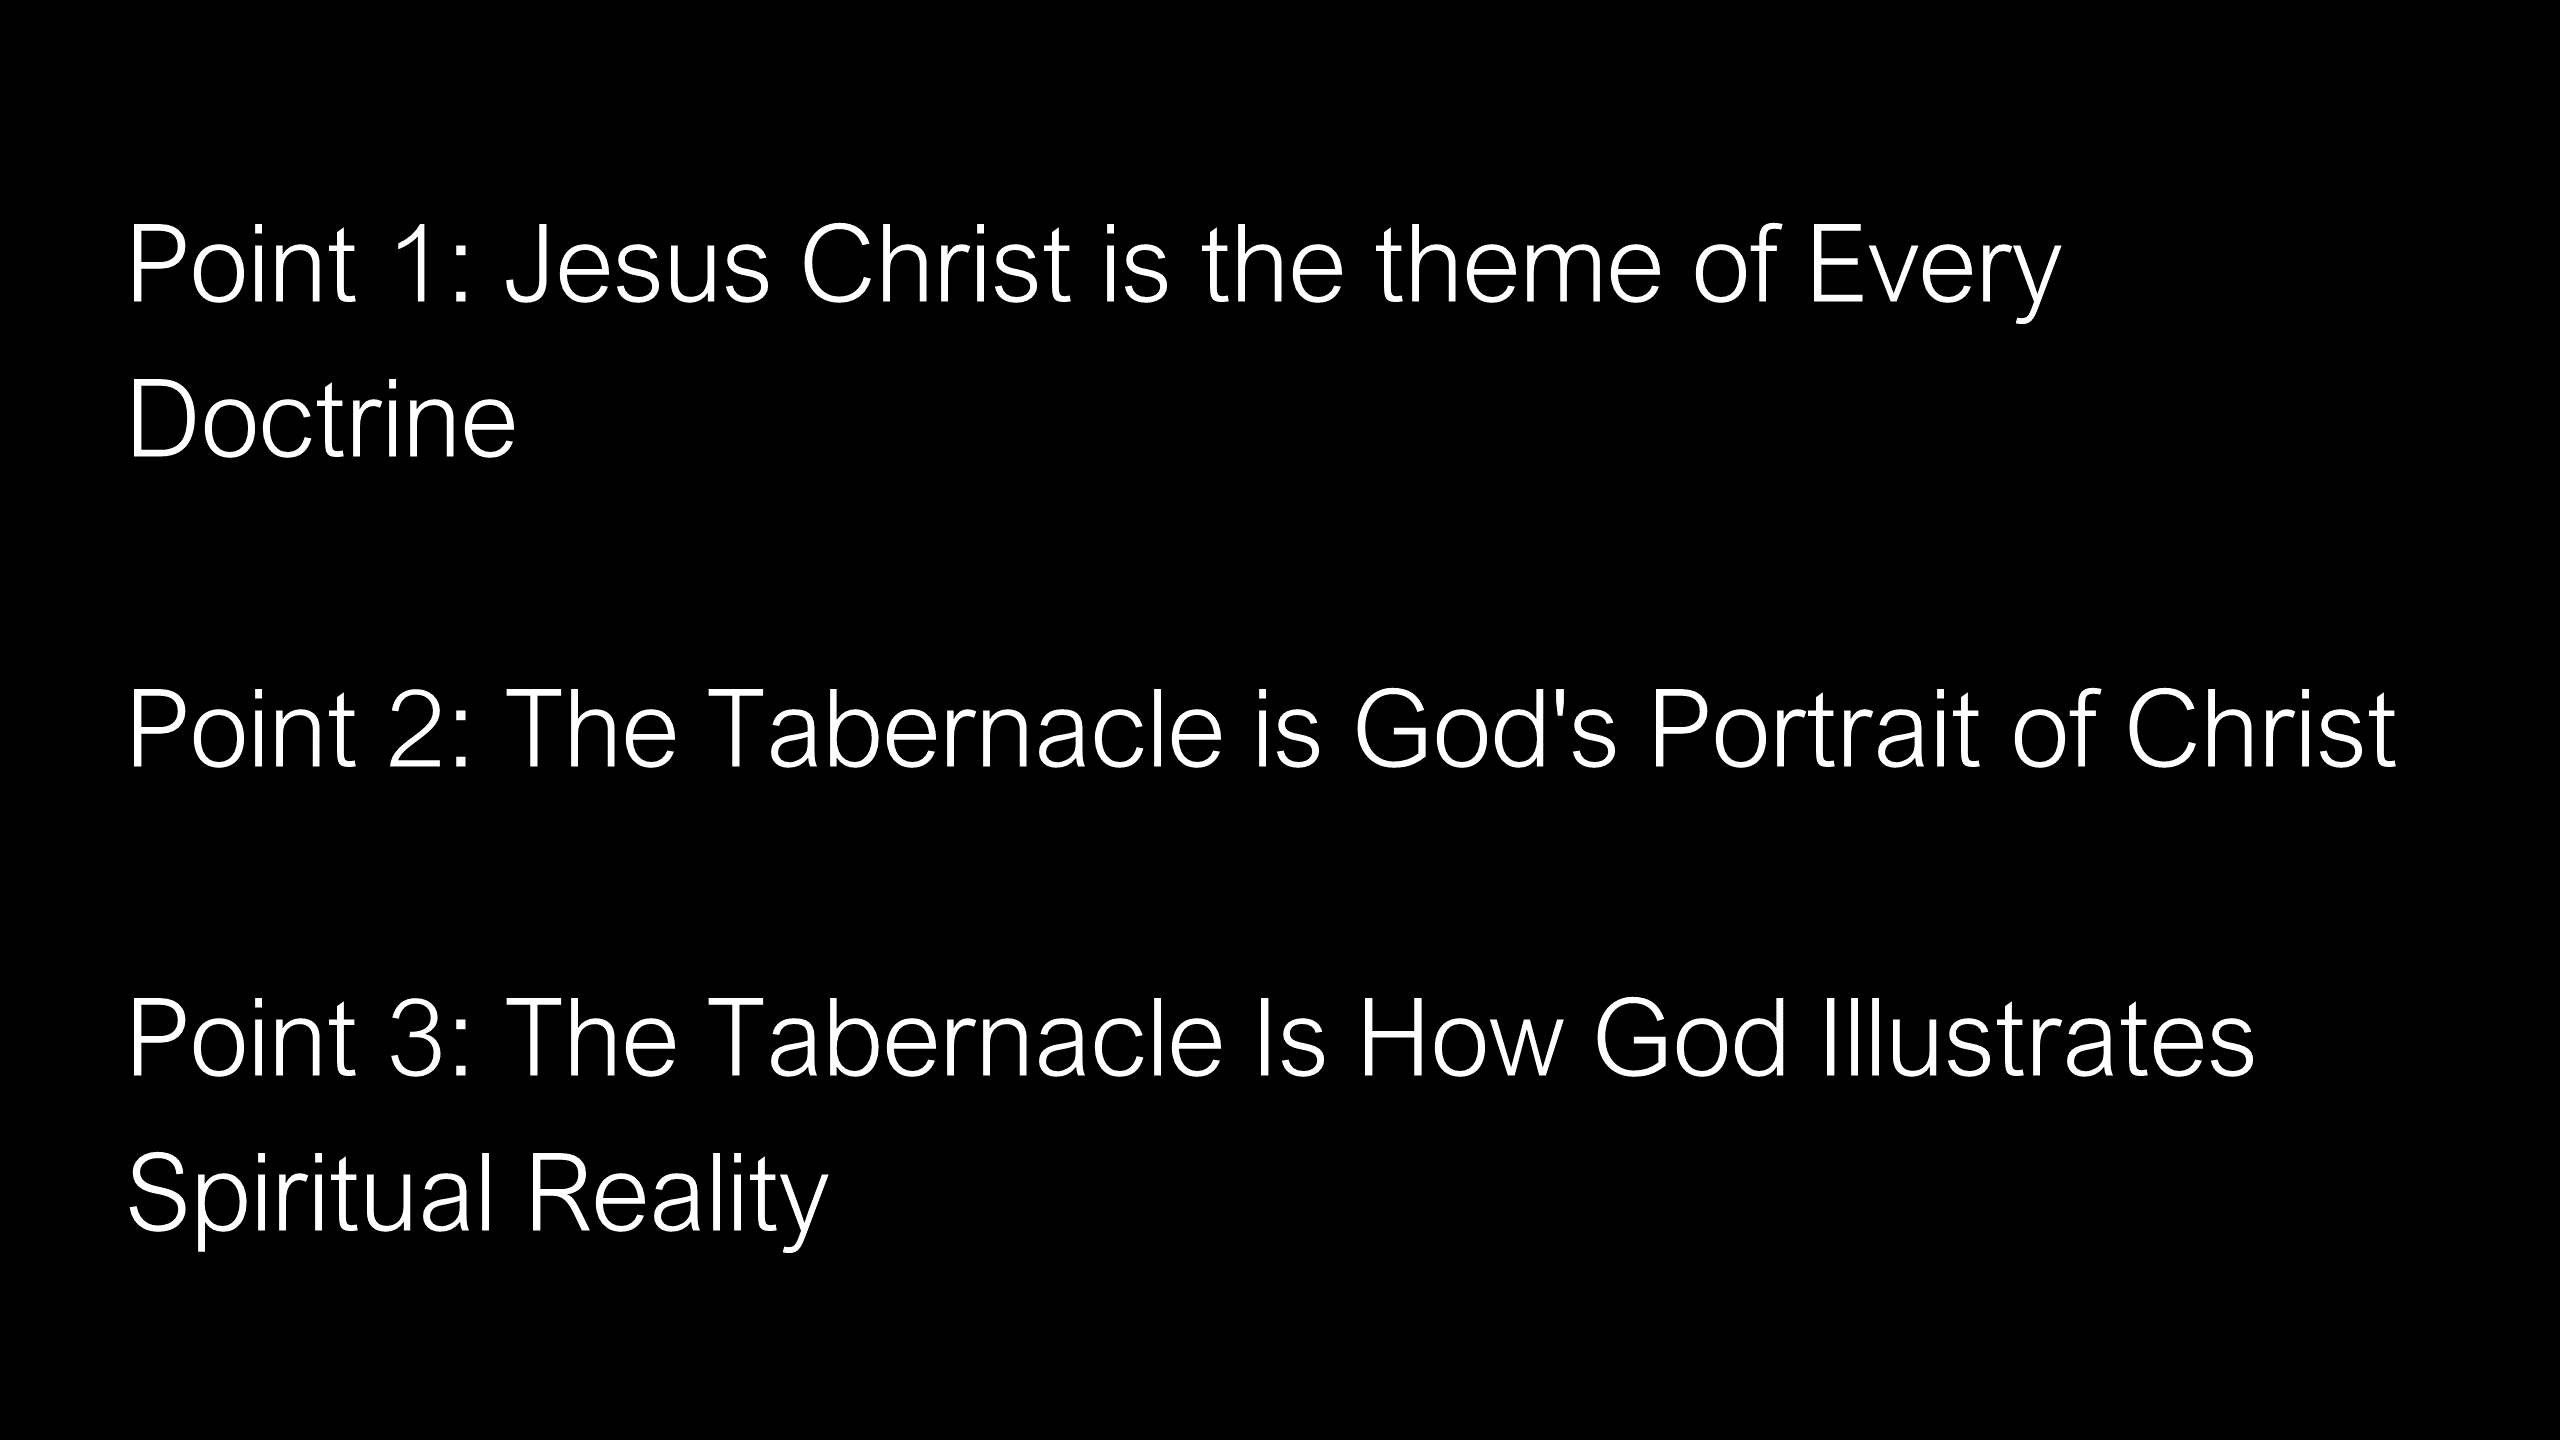 The Tabernacle - God's Doorway to Heaven for Sinners